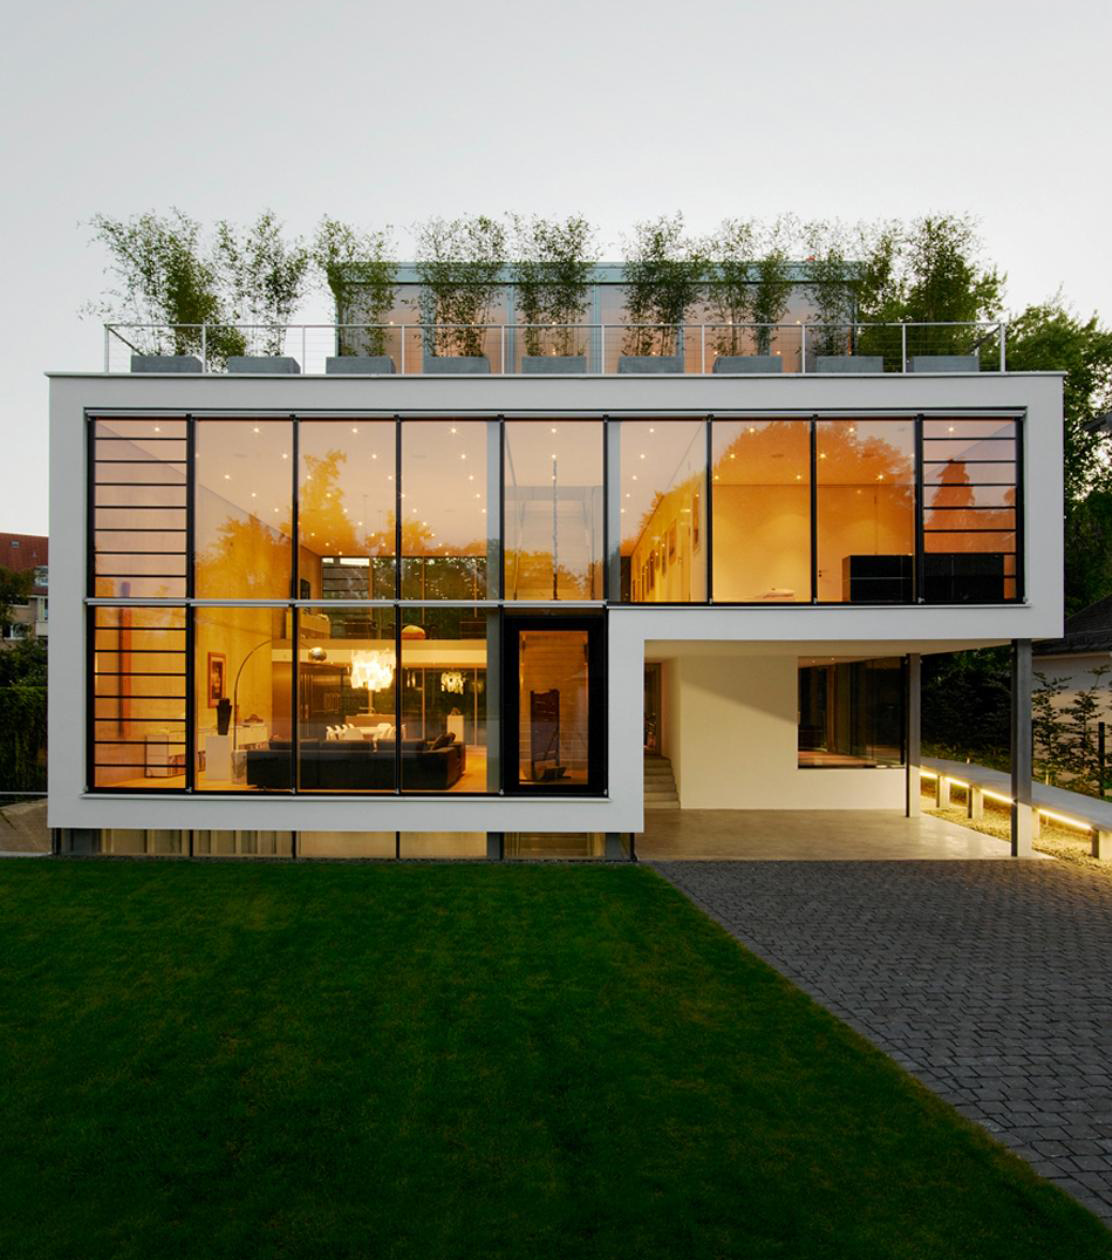 dazzling-small-sustainable-homes-design-inspiration-showcasing-glass-wall-house-architecture-with-roof-terrace-feat-green-ornamental-plans-and-green-grass-front-garden-ins